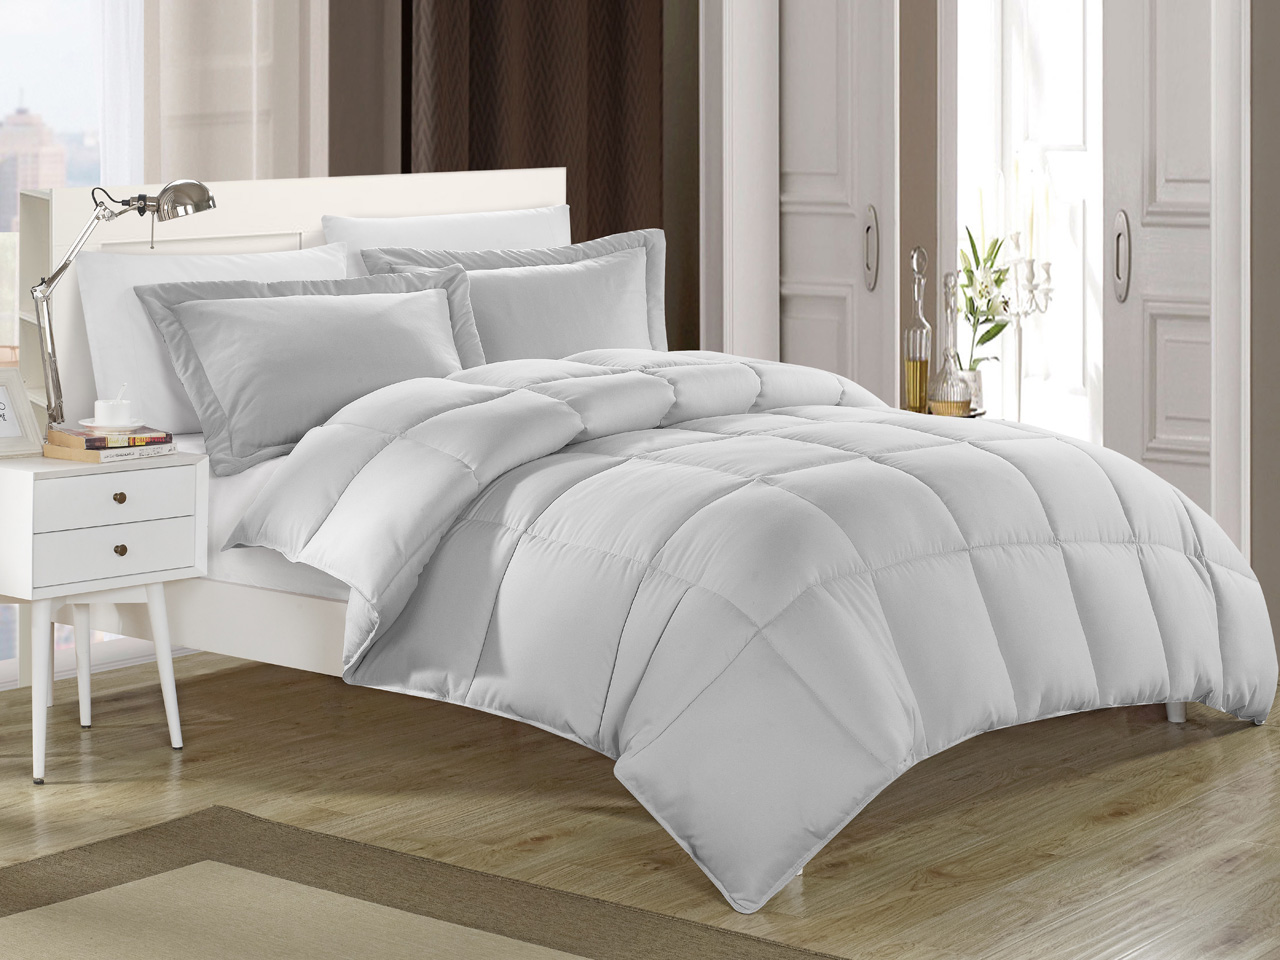 thumbnail products down sheet the comforter king color solid people alternative online comforters original